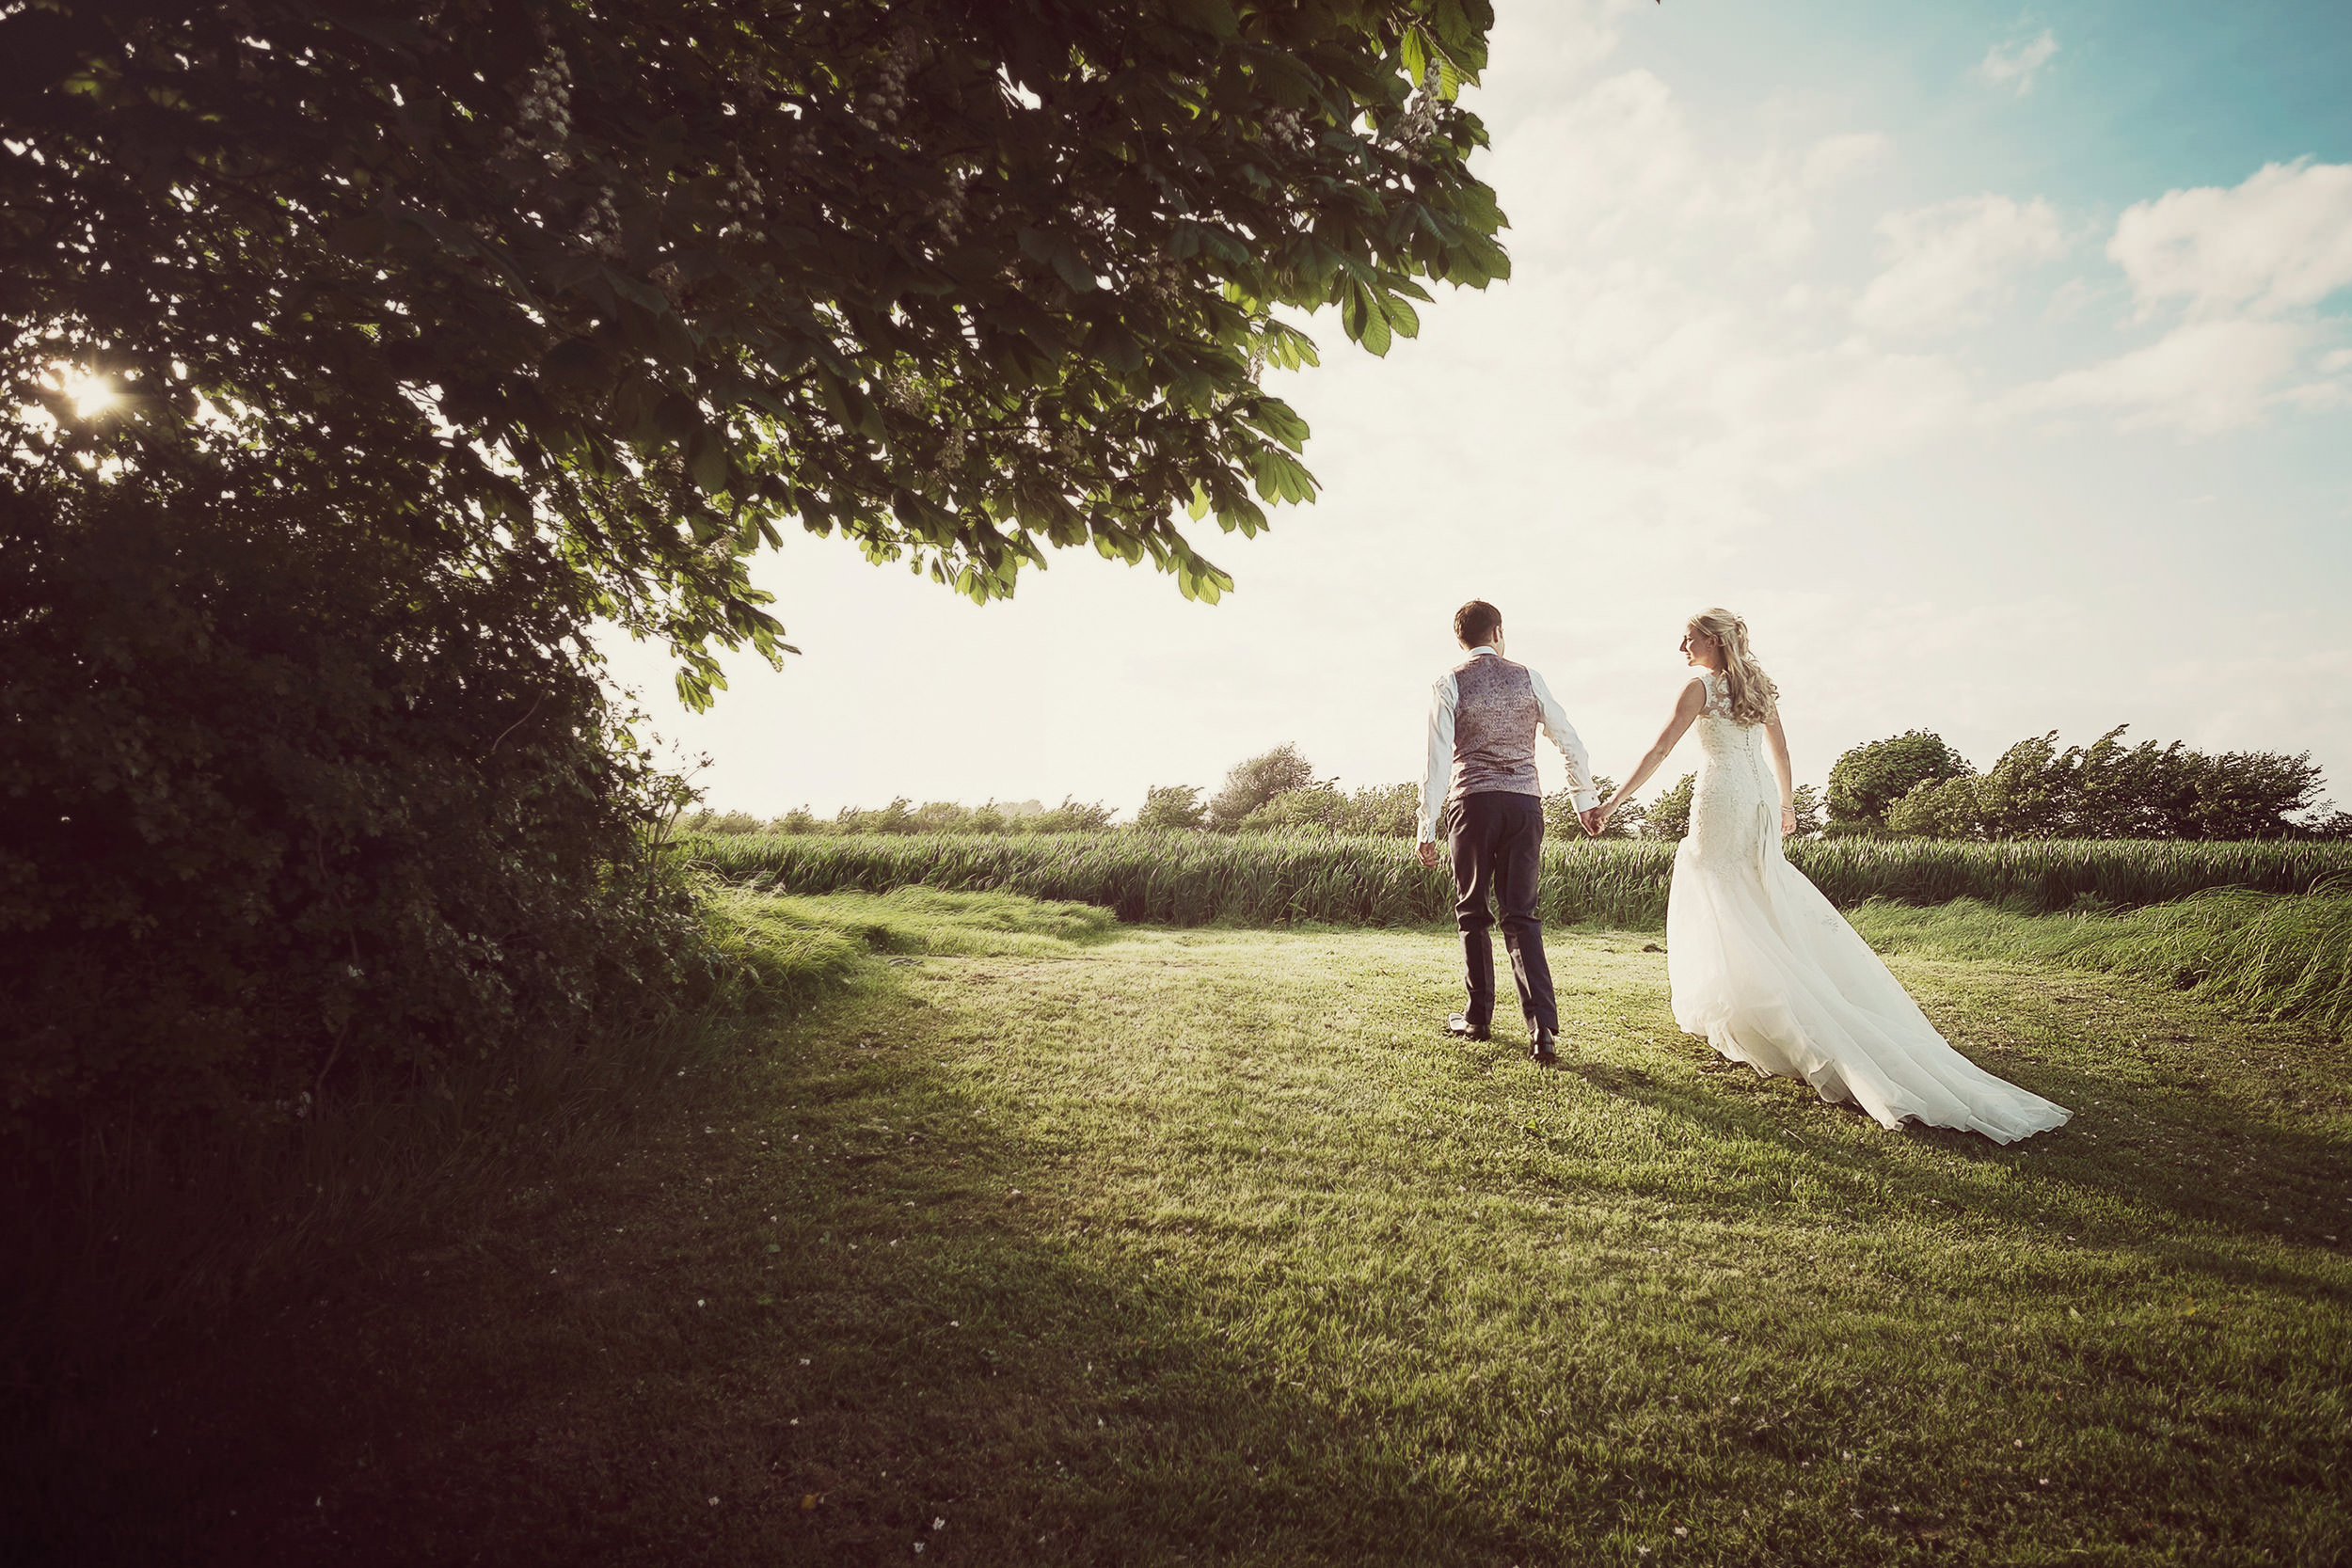 light and backround when learning wedding photography